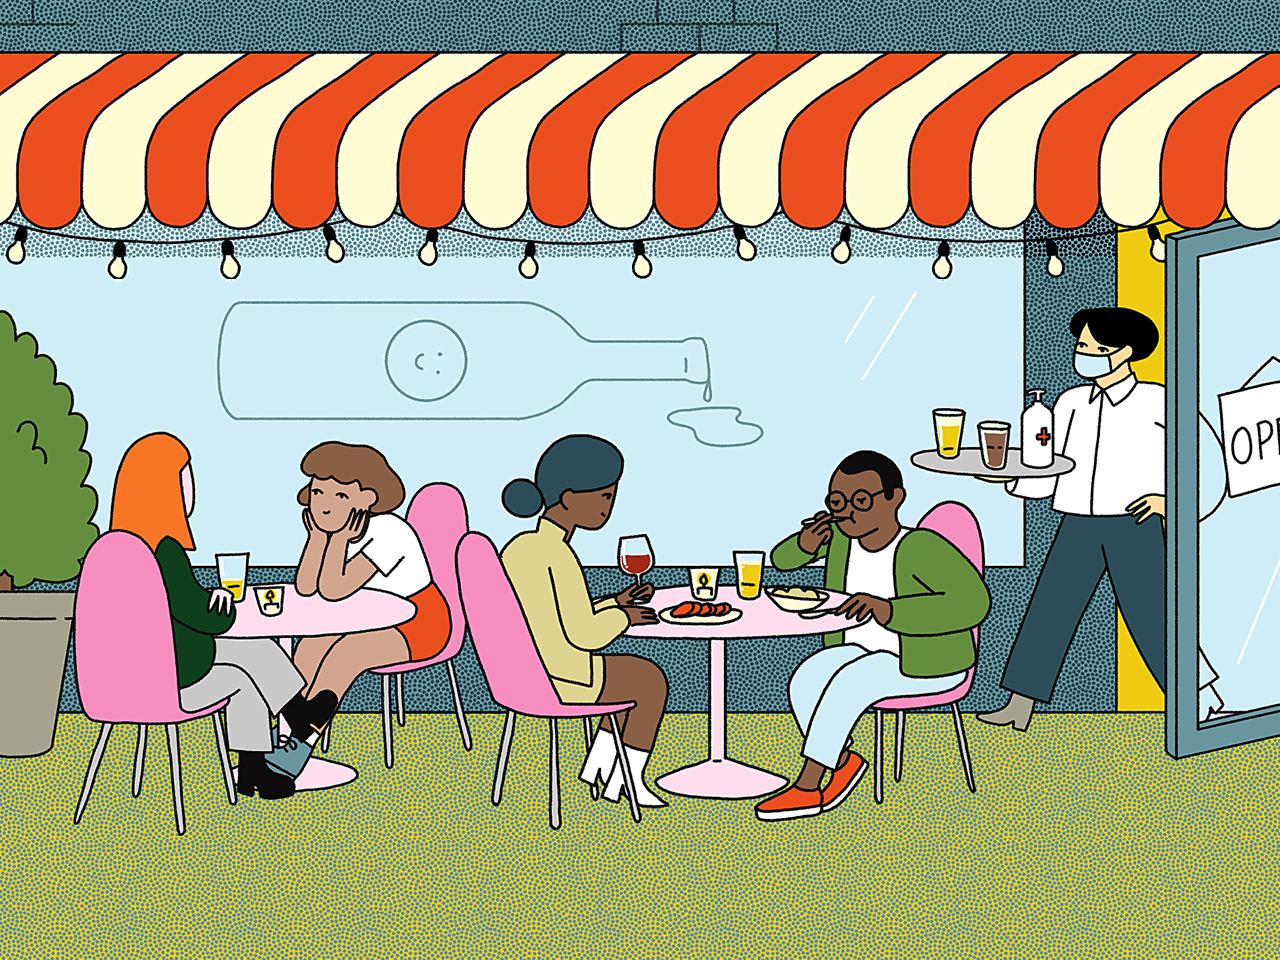 A graphic design image of a group of people sitting at patio tables, socializing. A waiter exits a restaurant door behind them, holding a tray of drinks